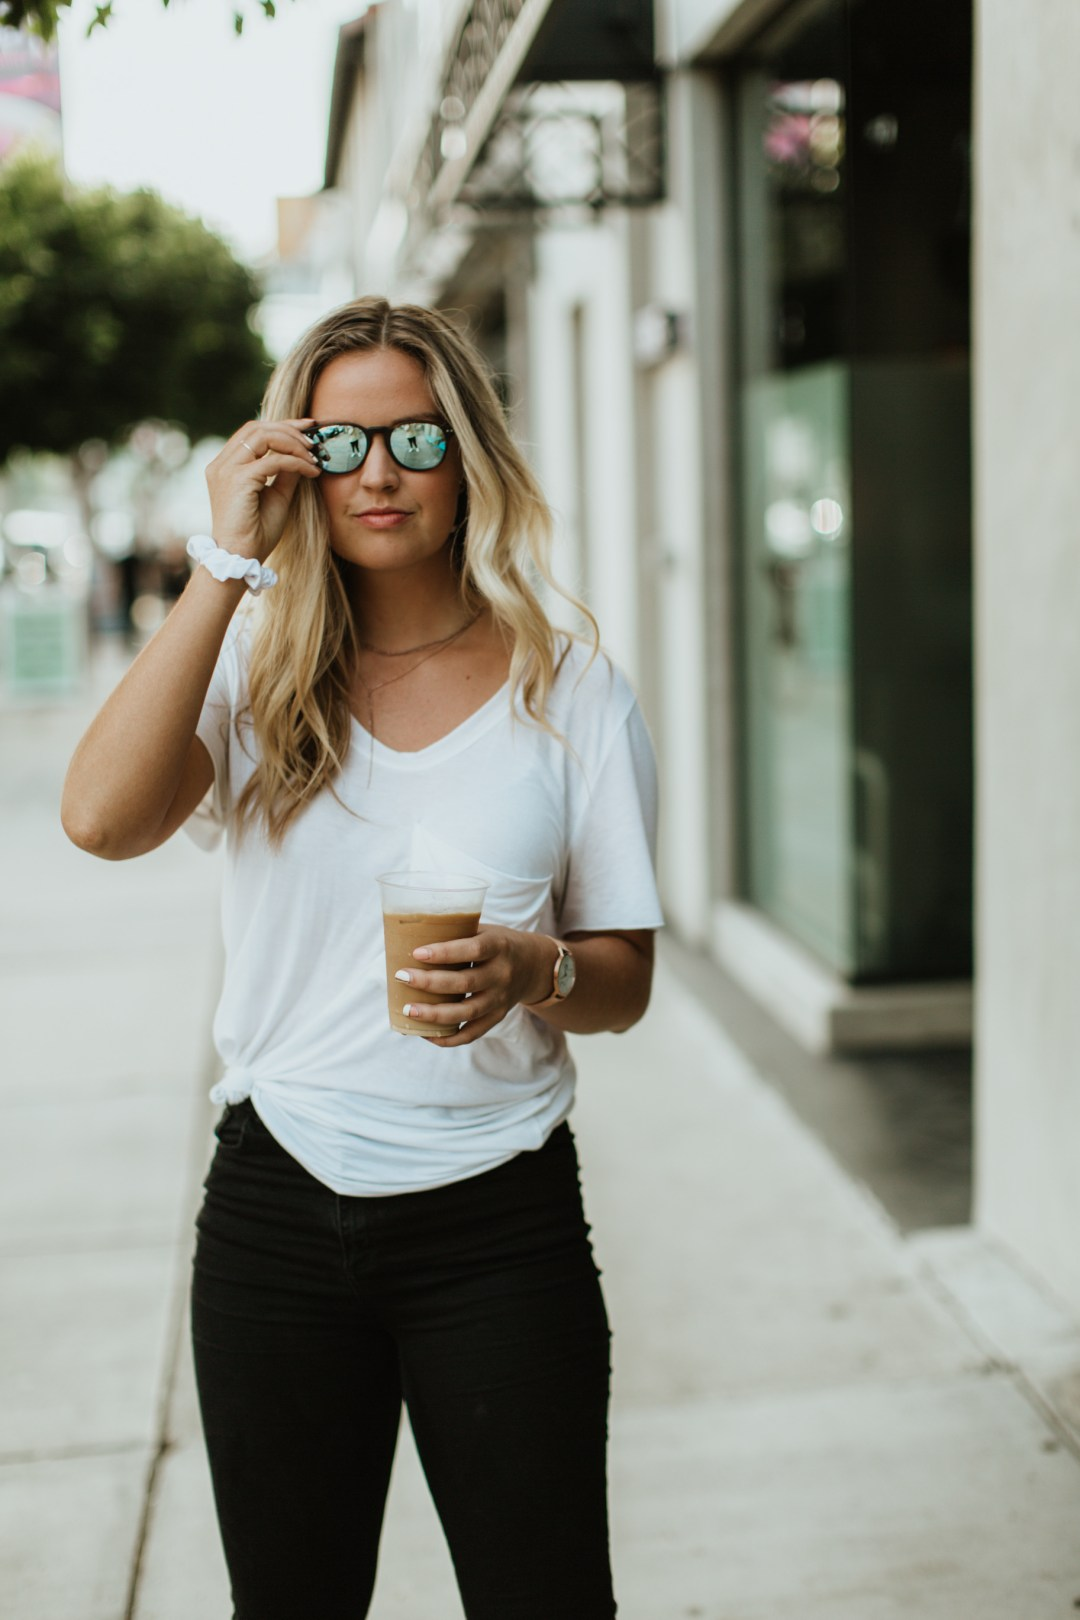 Los angeles model with coffee